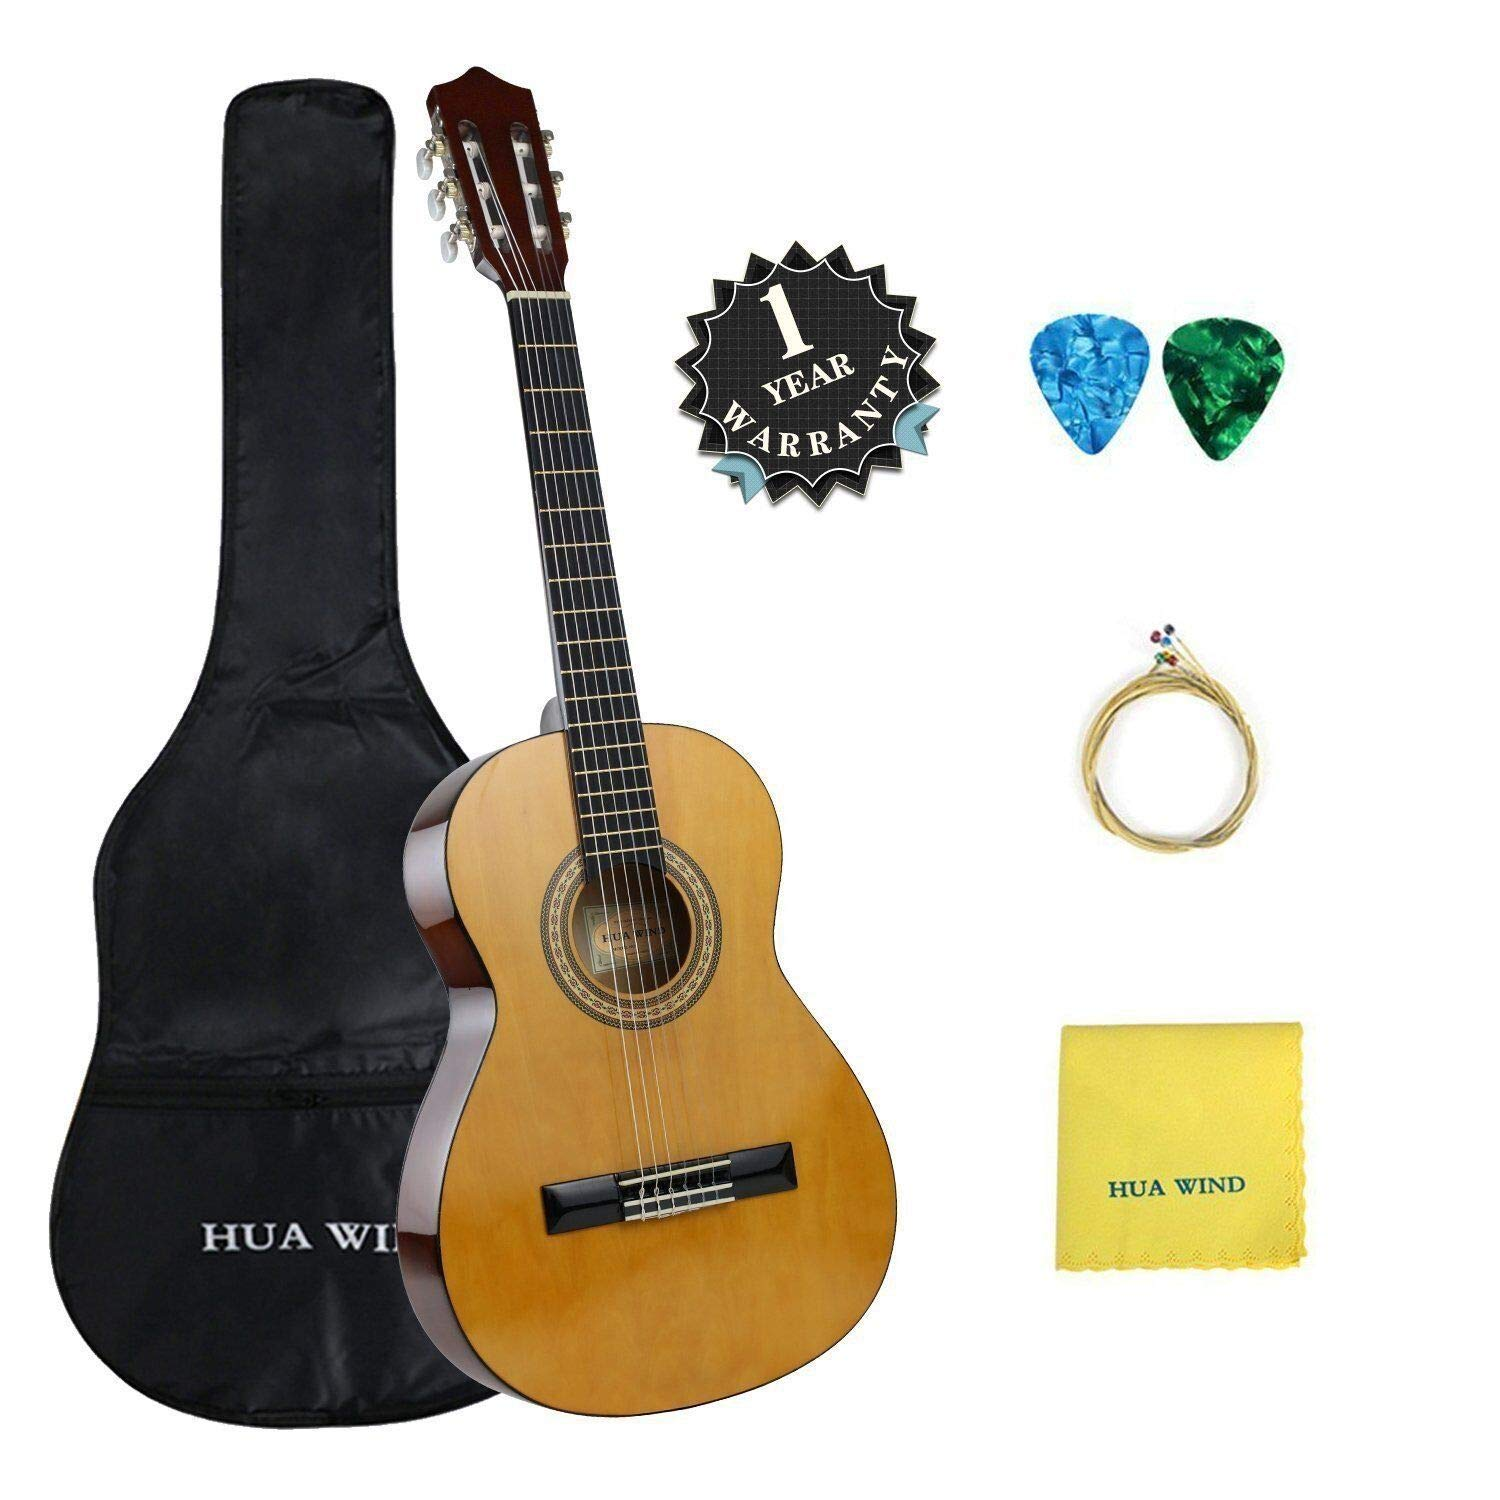 Classical Guitar set HUA WIND 36'' inch 3/4 Size Starter Classical Acoustic Guitar with Gig bag,Picks, Strings, Polishing Cloth (3/4 Size)